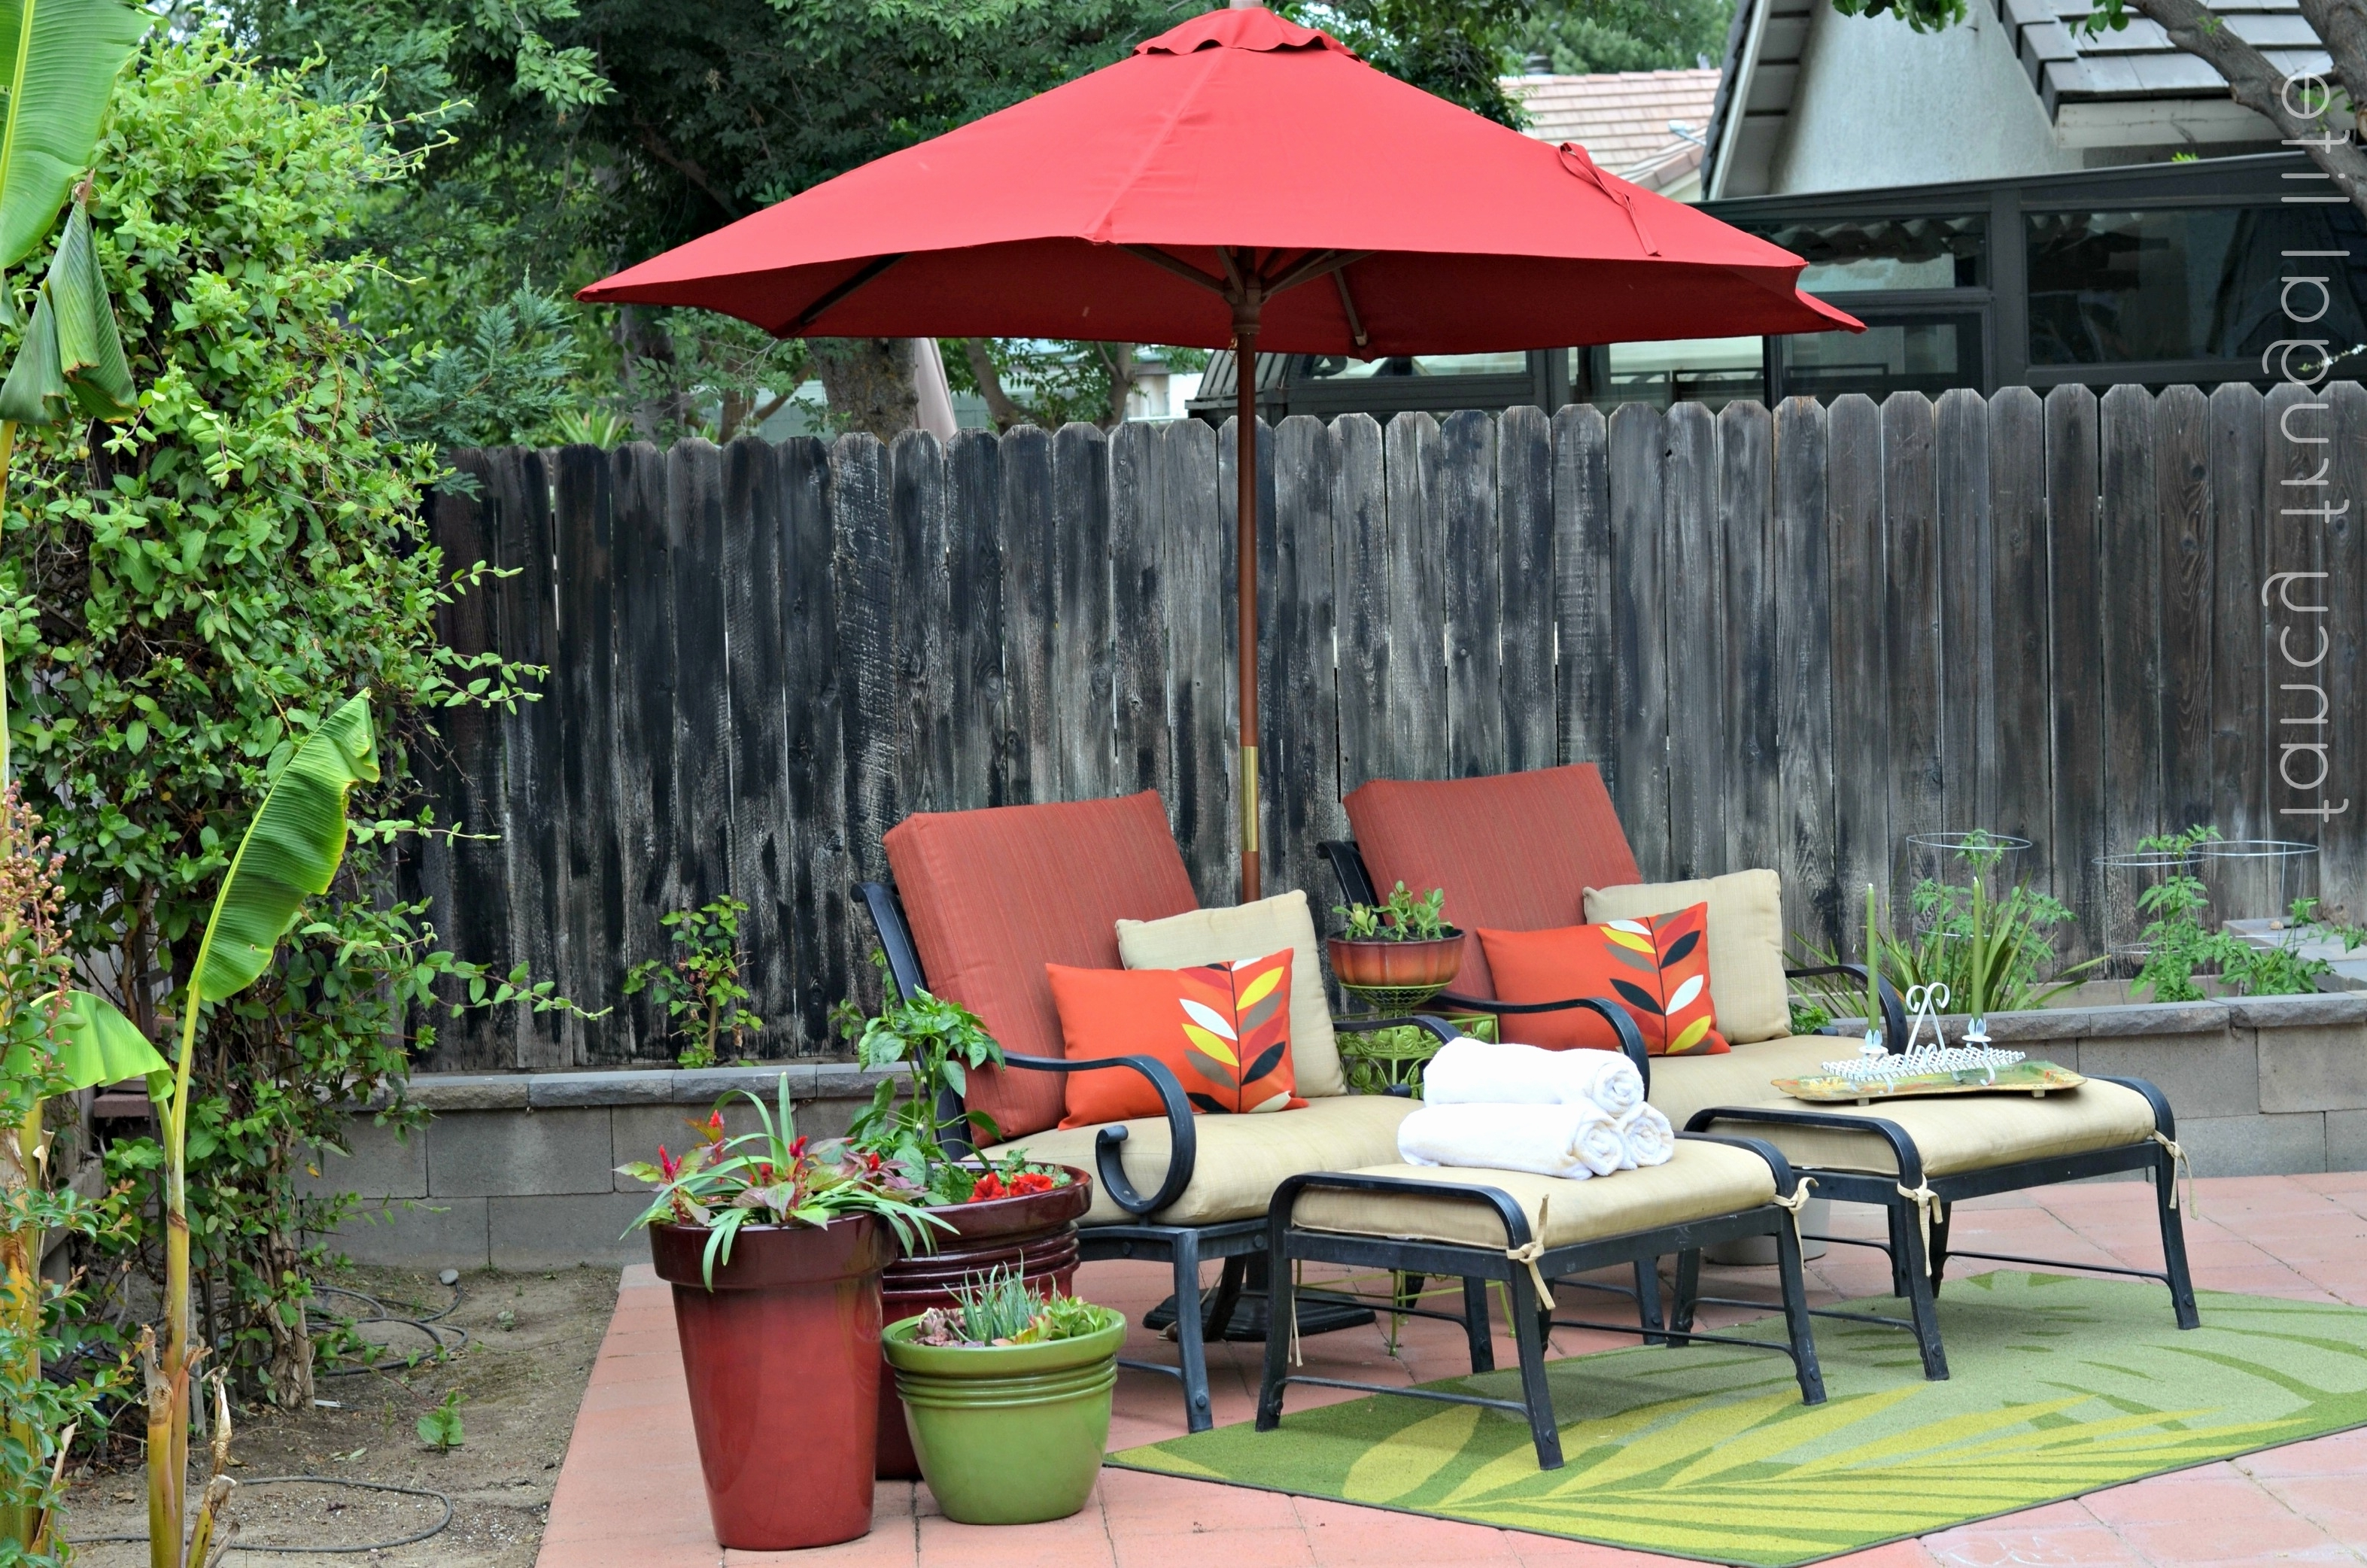 11 Cantilever Patio Umbrella With Base Costco (View 12 of 20)